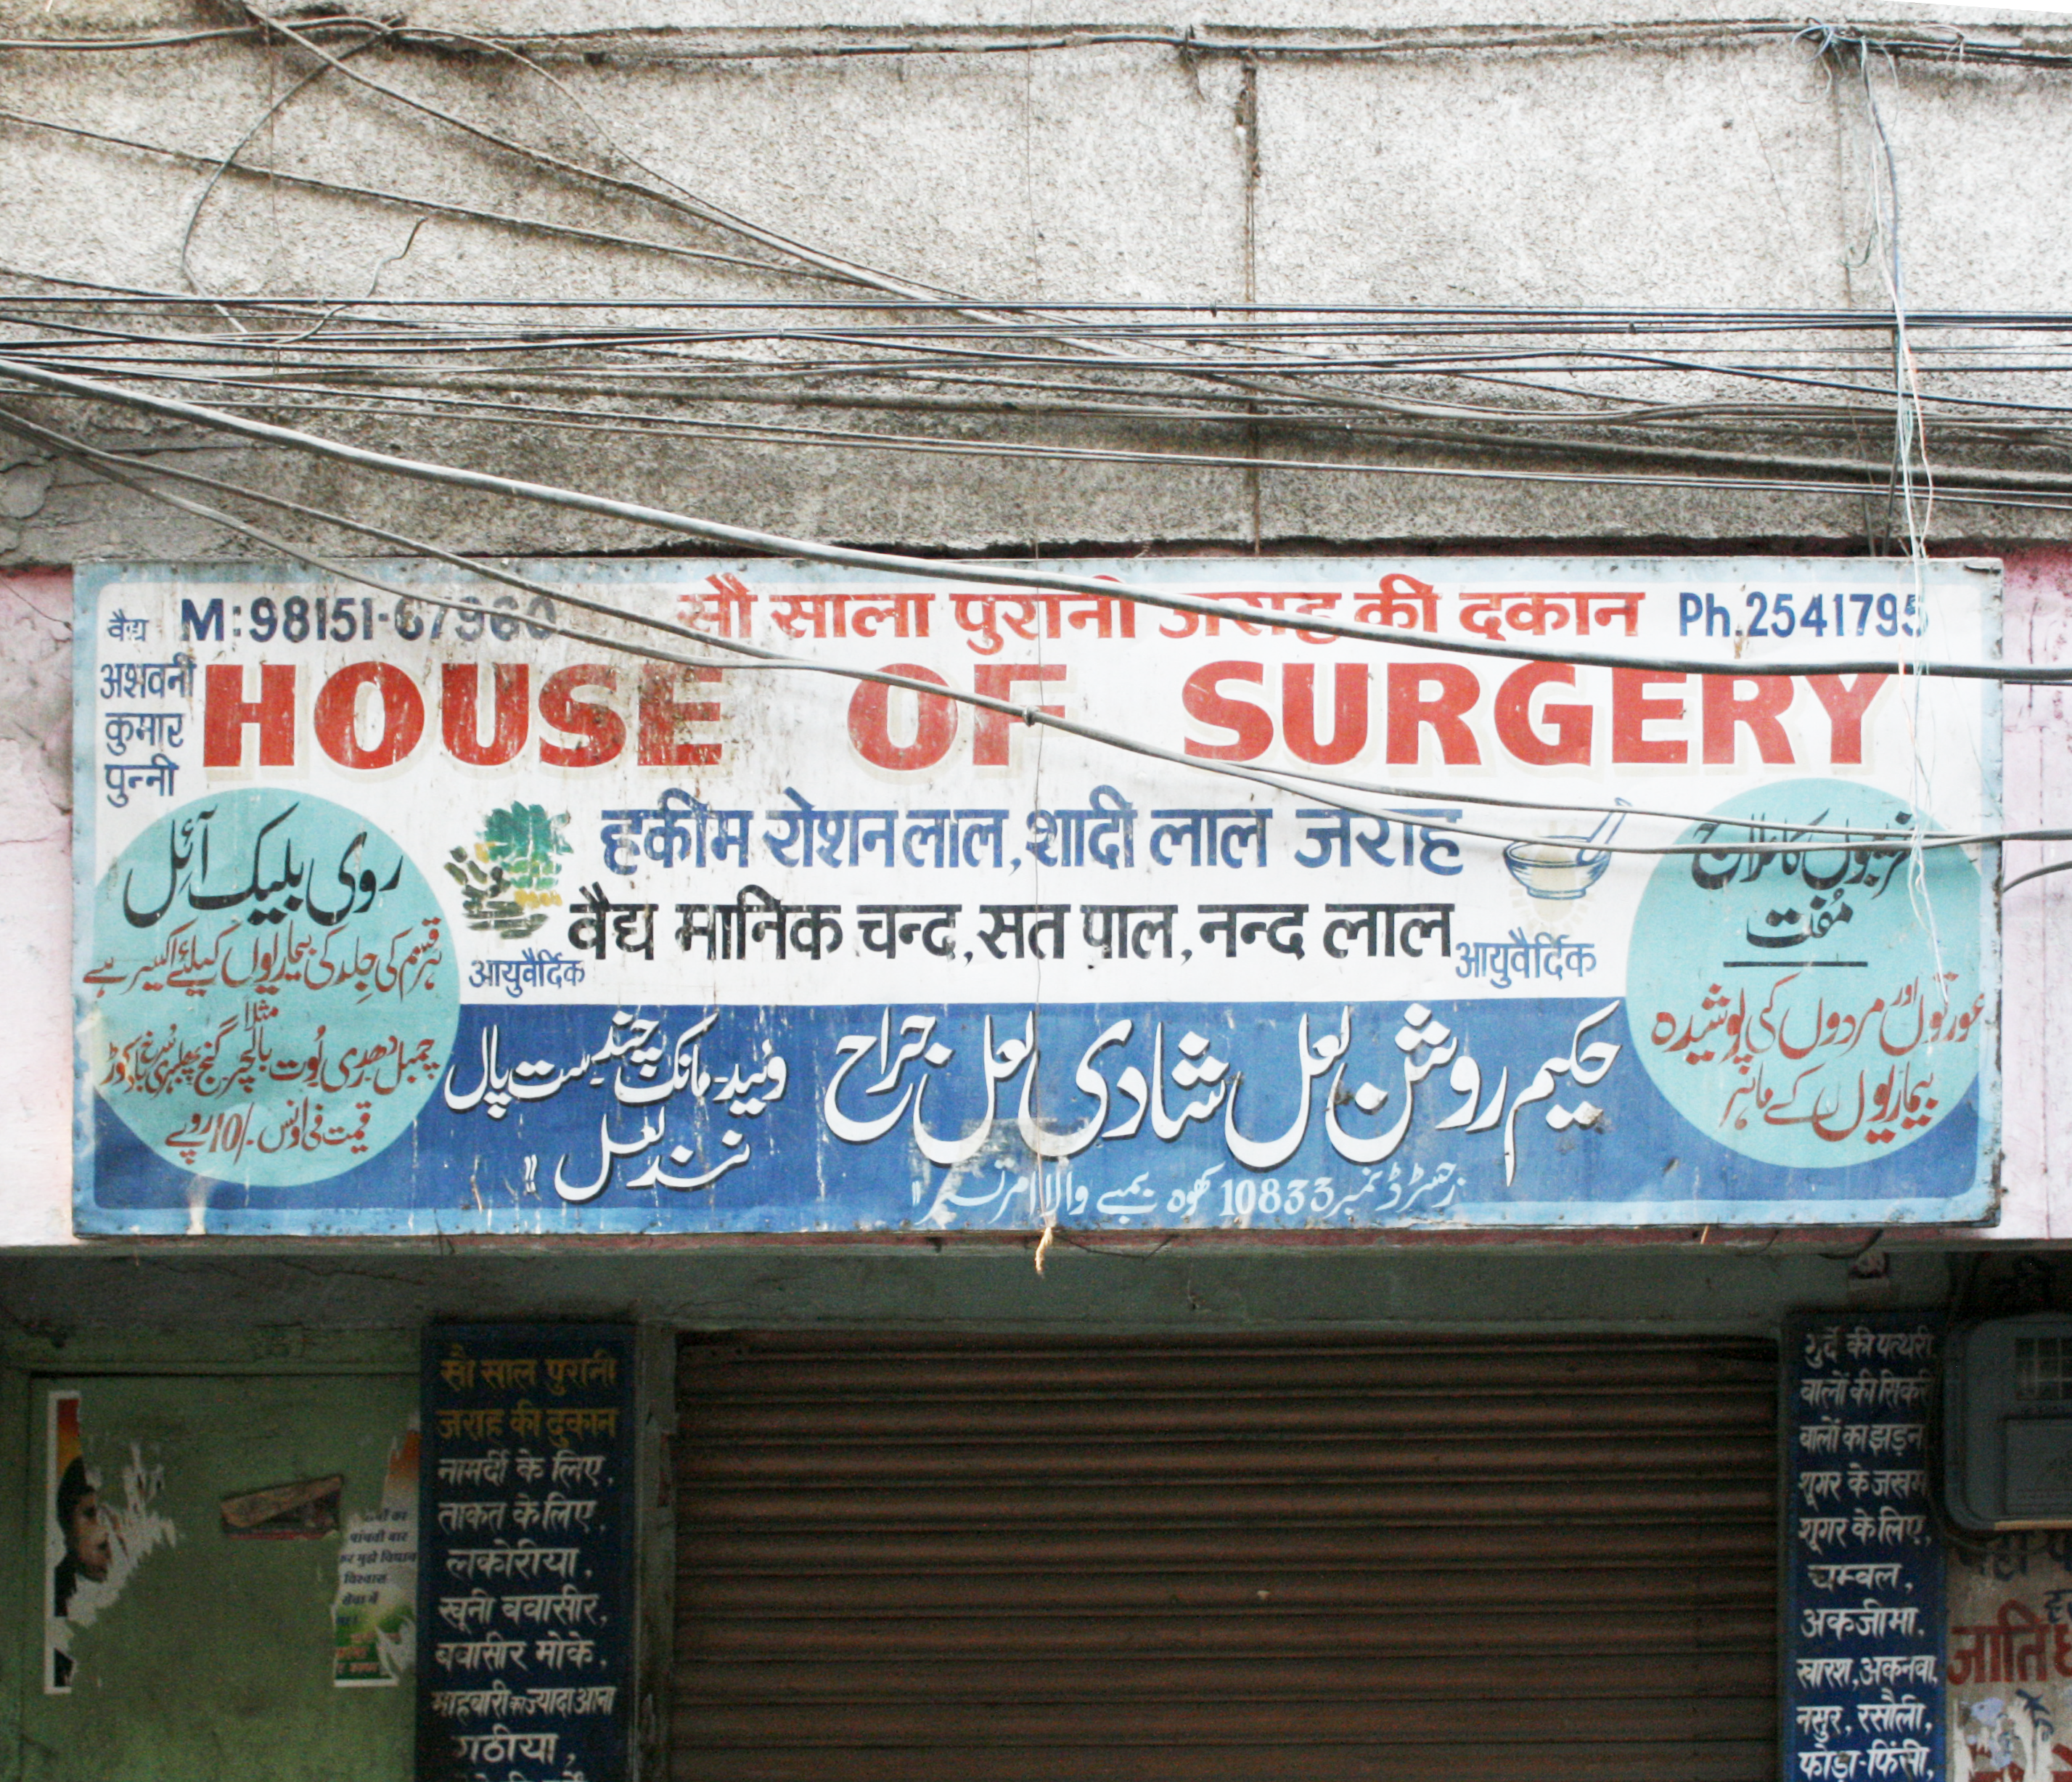 House of Surgery